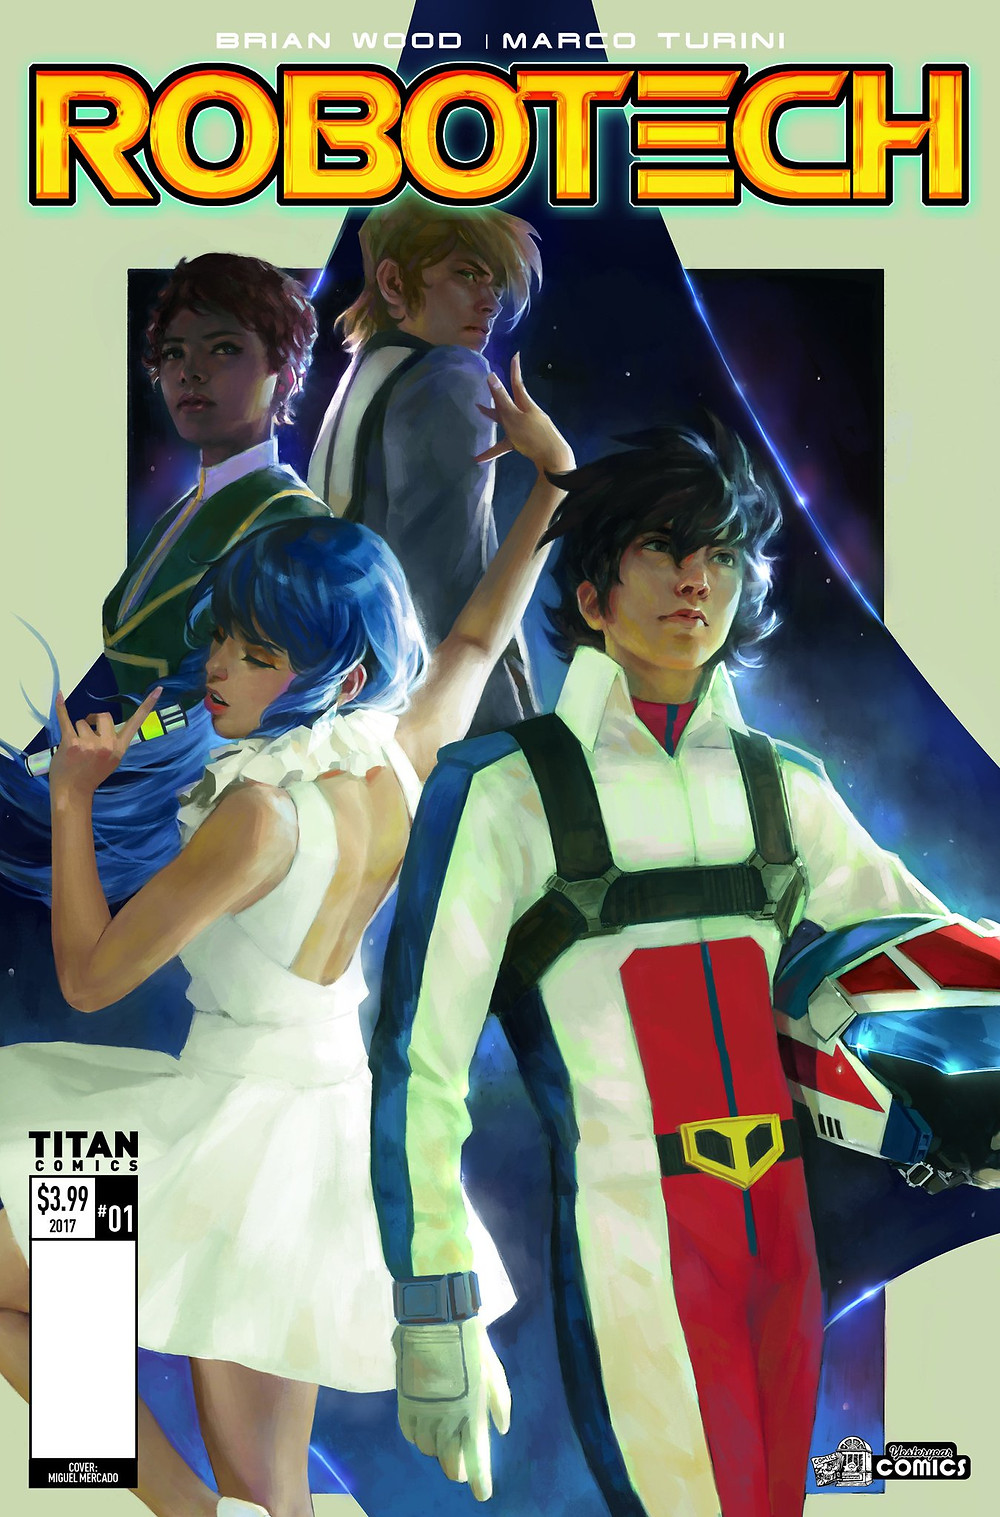 ROBOTECH #1  Writer: Brian Wood  Artist: Marco Turini  FC • 32pp • $3.99 • On Sale July 26, 2017